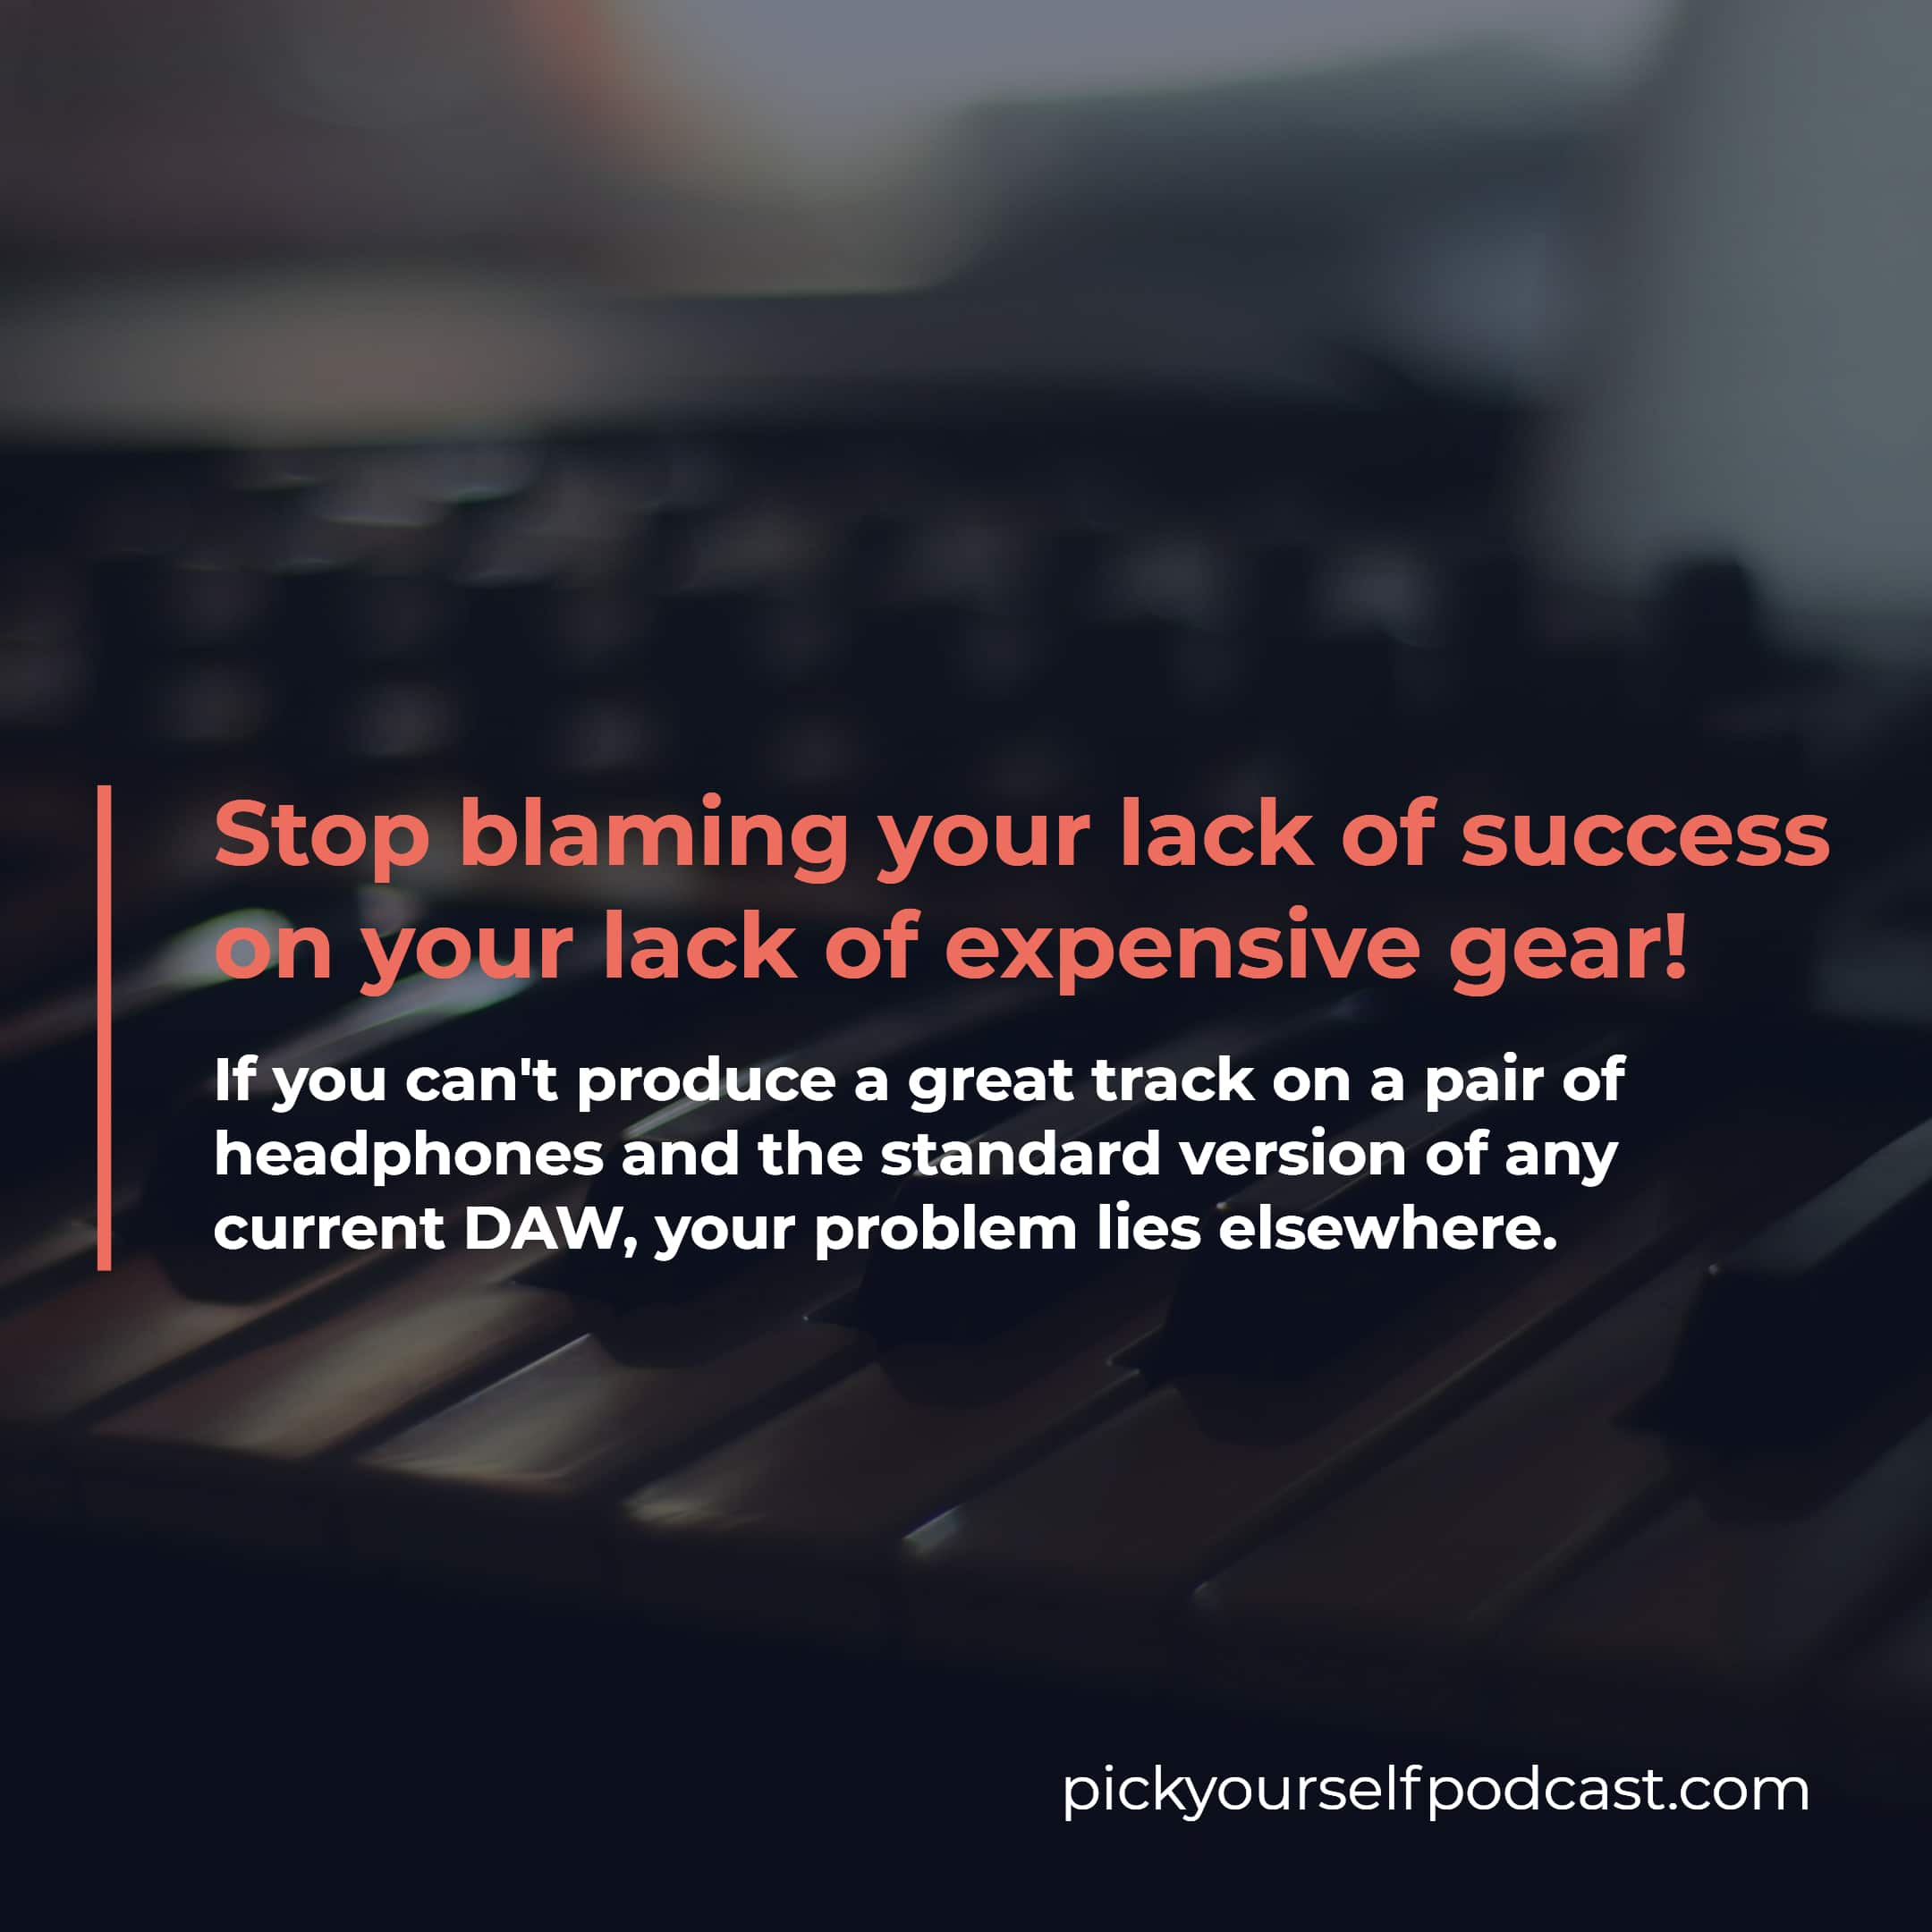 You shouldn't blame your lack of success on your lack of expensive gear.